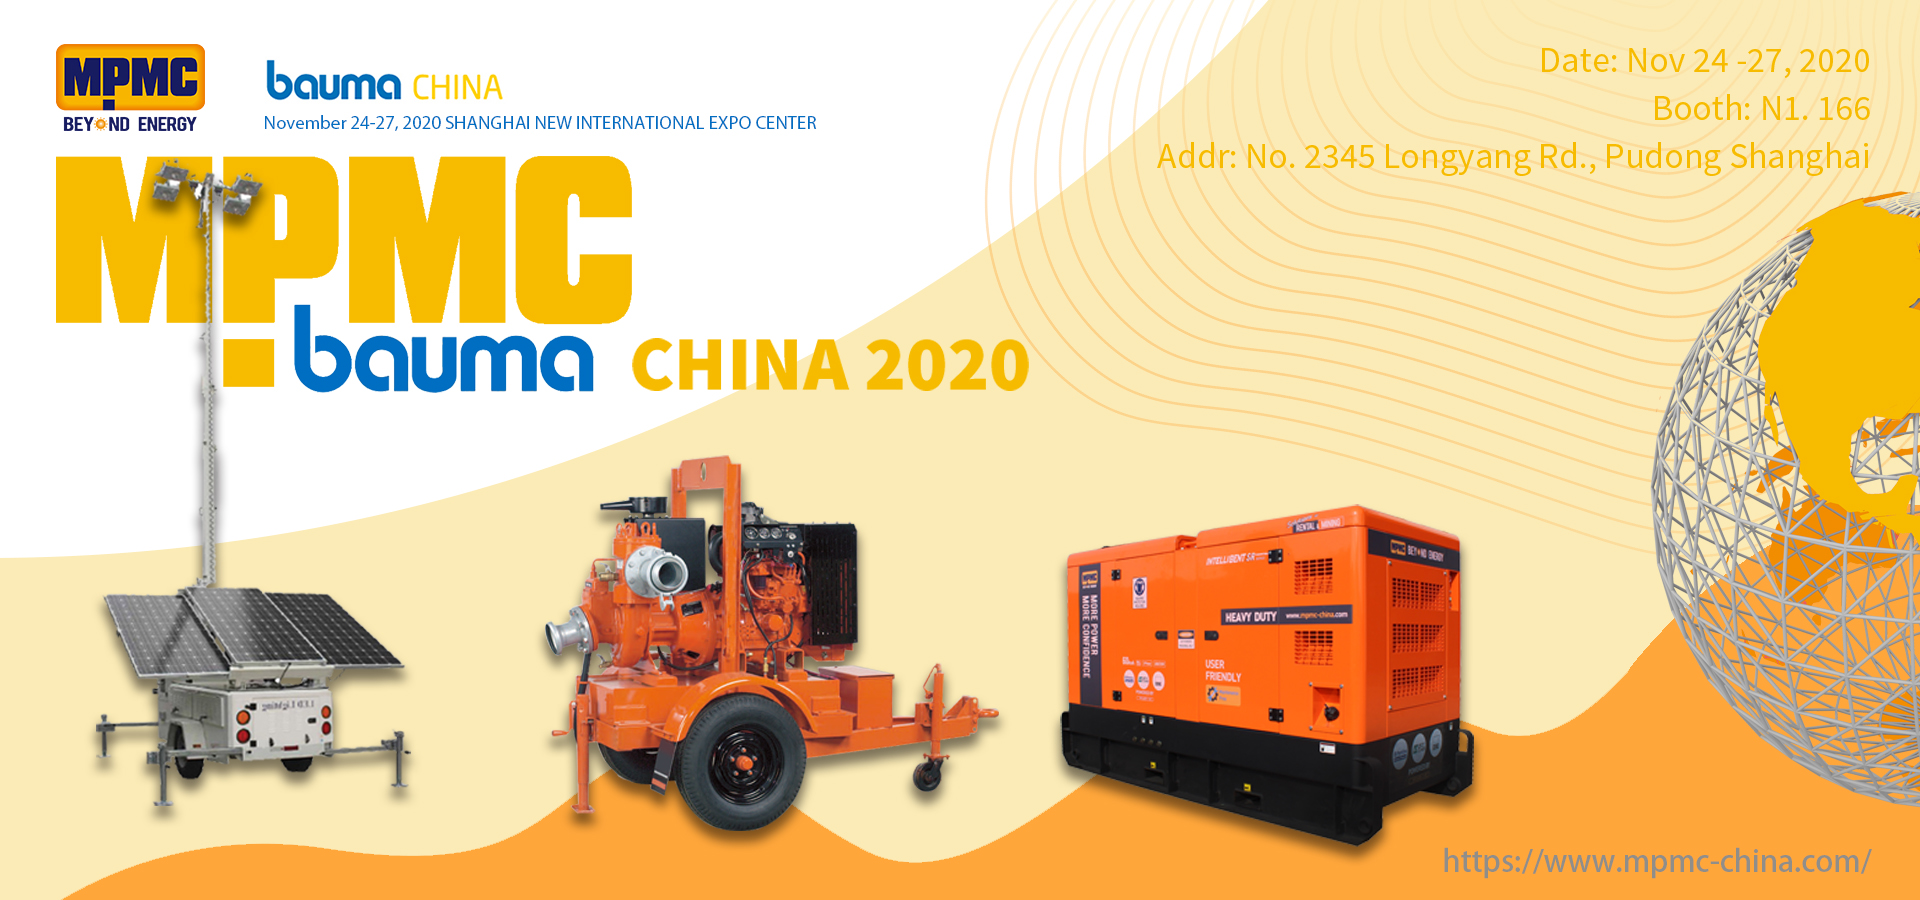 Meet Us at BAUMA China 2020 - MPMC Bringing NEW!